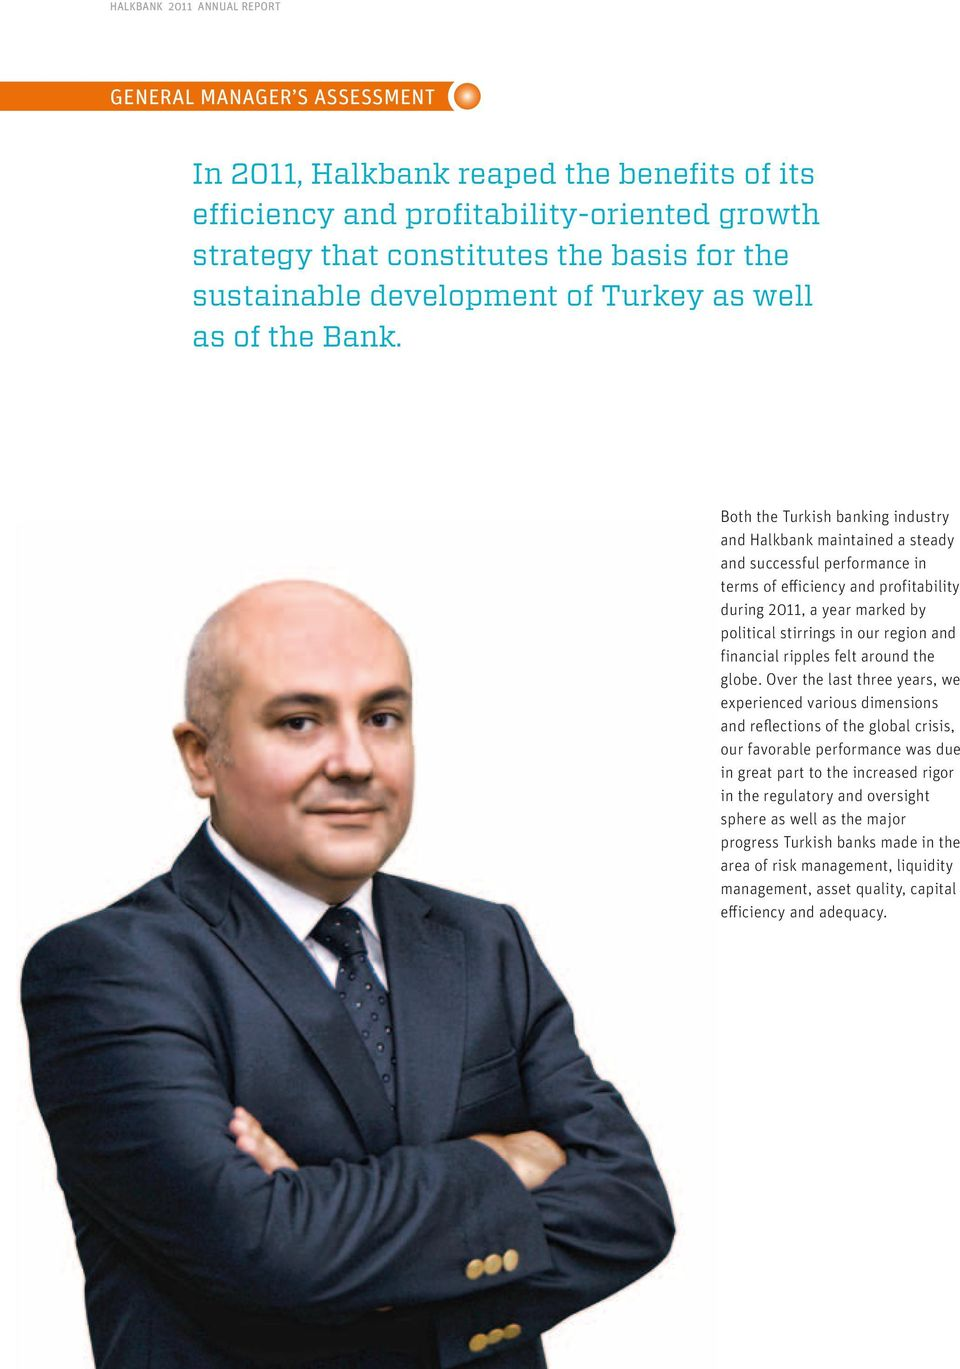 Both the Turkish banking industry and Halkbank maintained a steady and successful performance in terms of efficiency and profitability during 2011, a year marked by political stirrings in our region